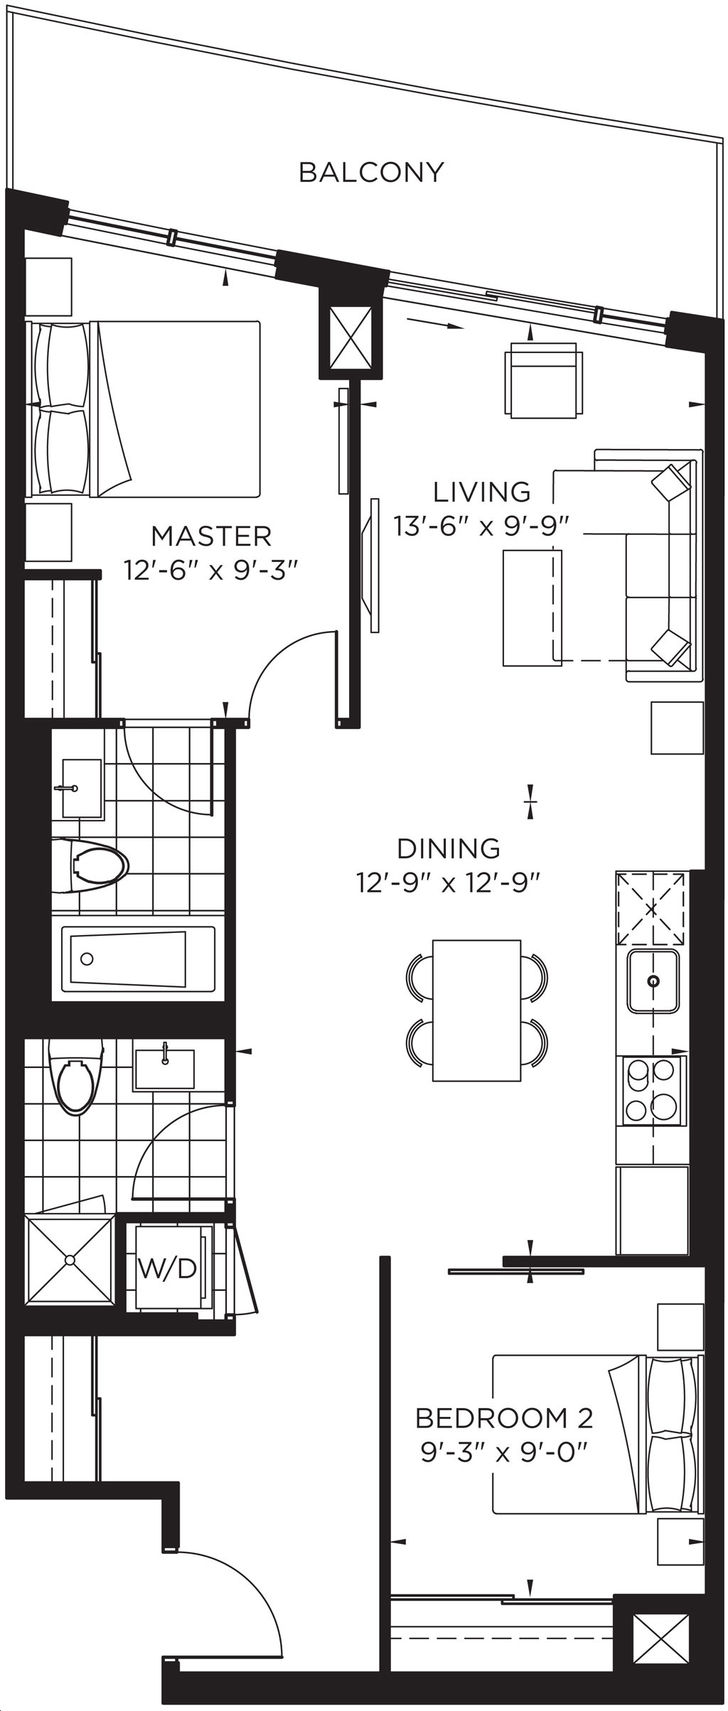 The Point at Emerald City 2 bed, 2 bath